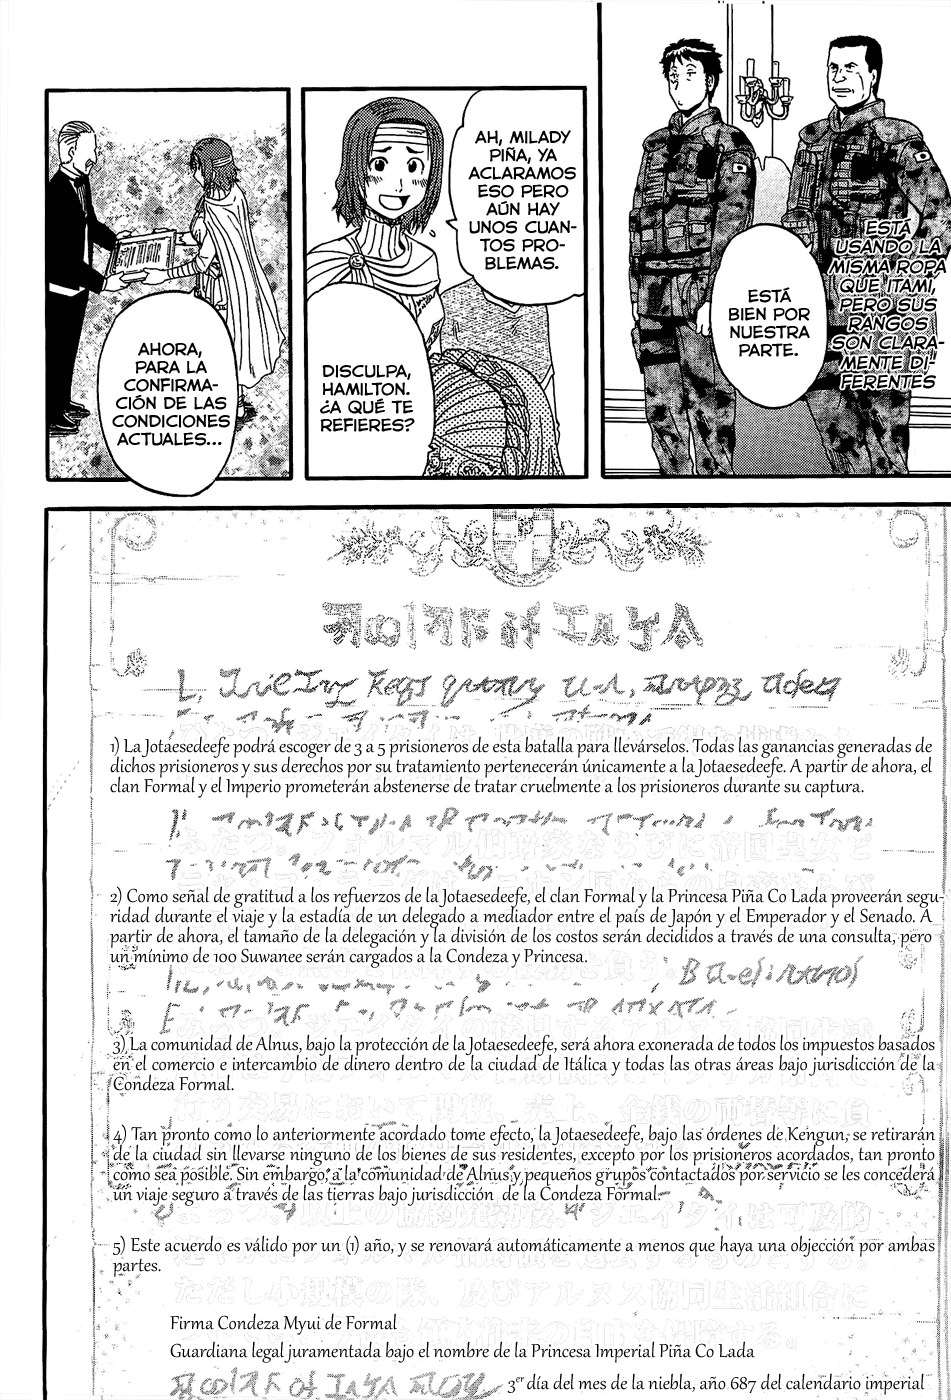 https://c5.ninemanga.com/es_manga/59/187/351085/f732049757d722d433d4033f05714c1d.jpg Page 9